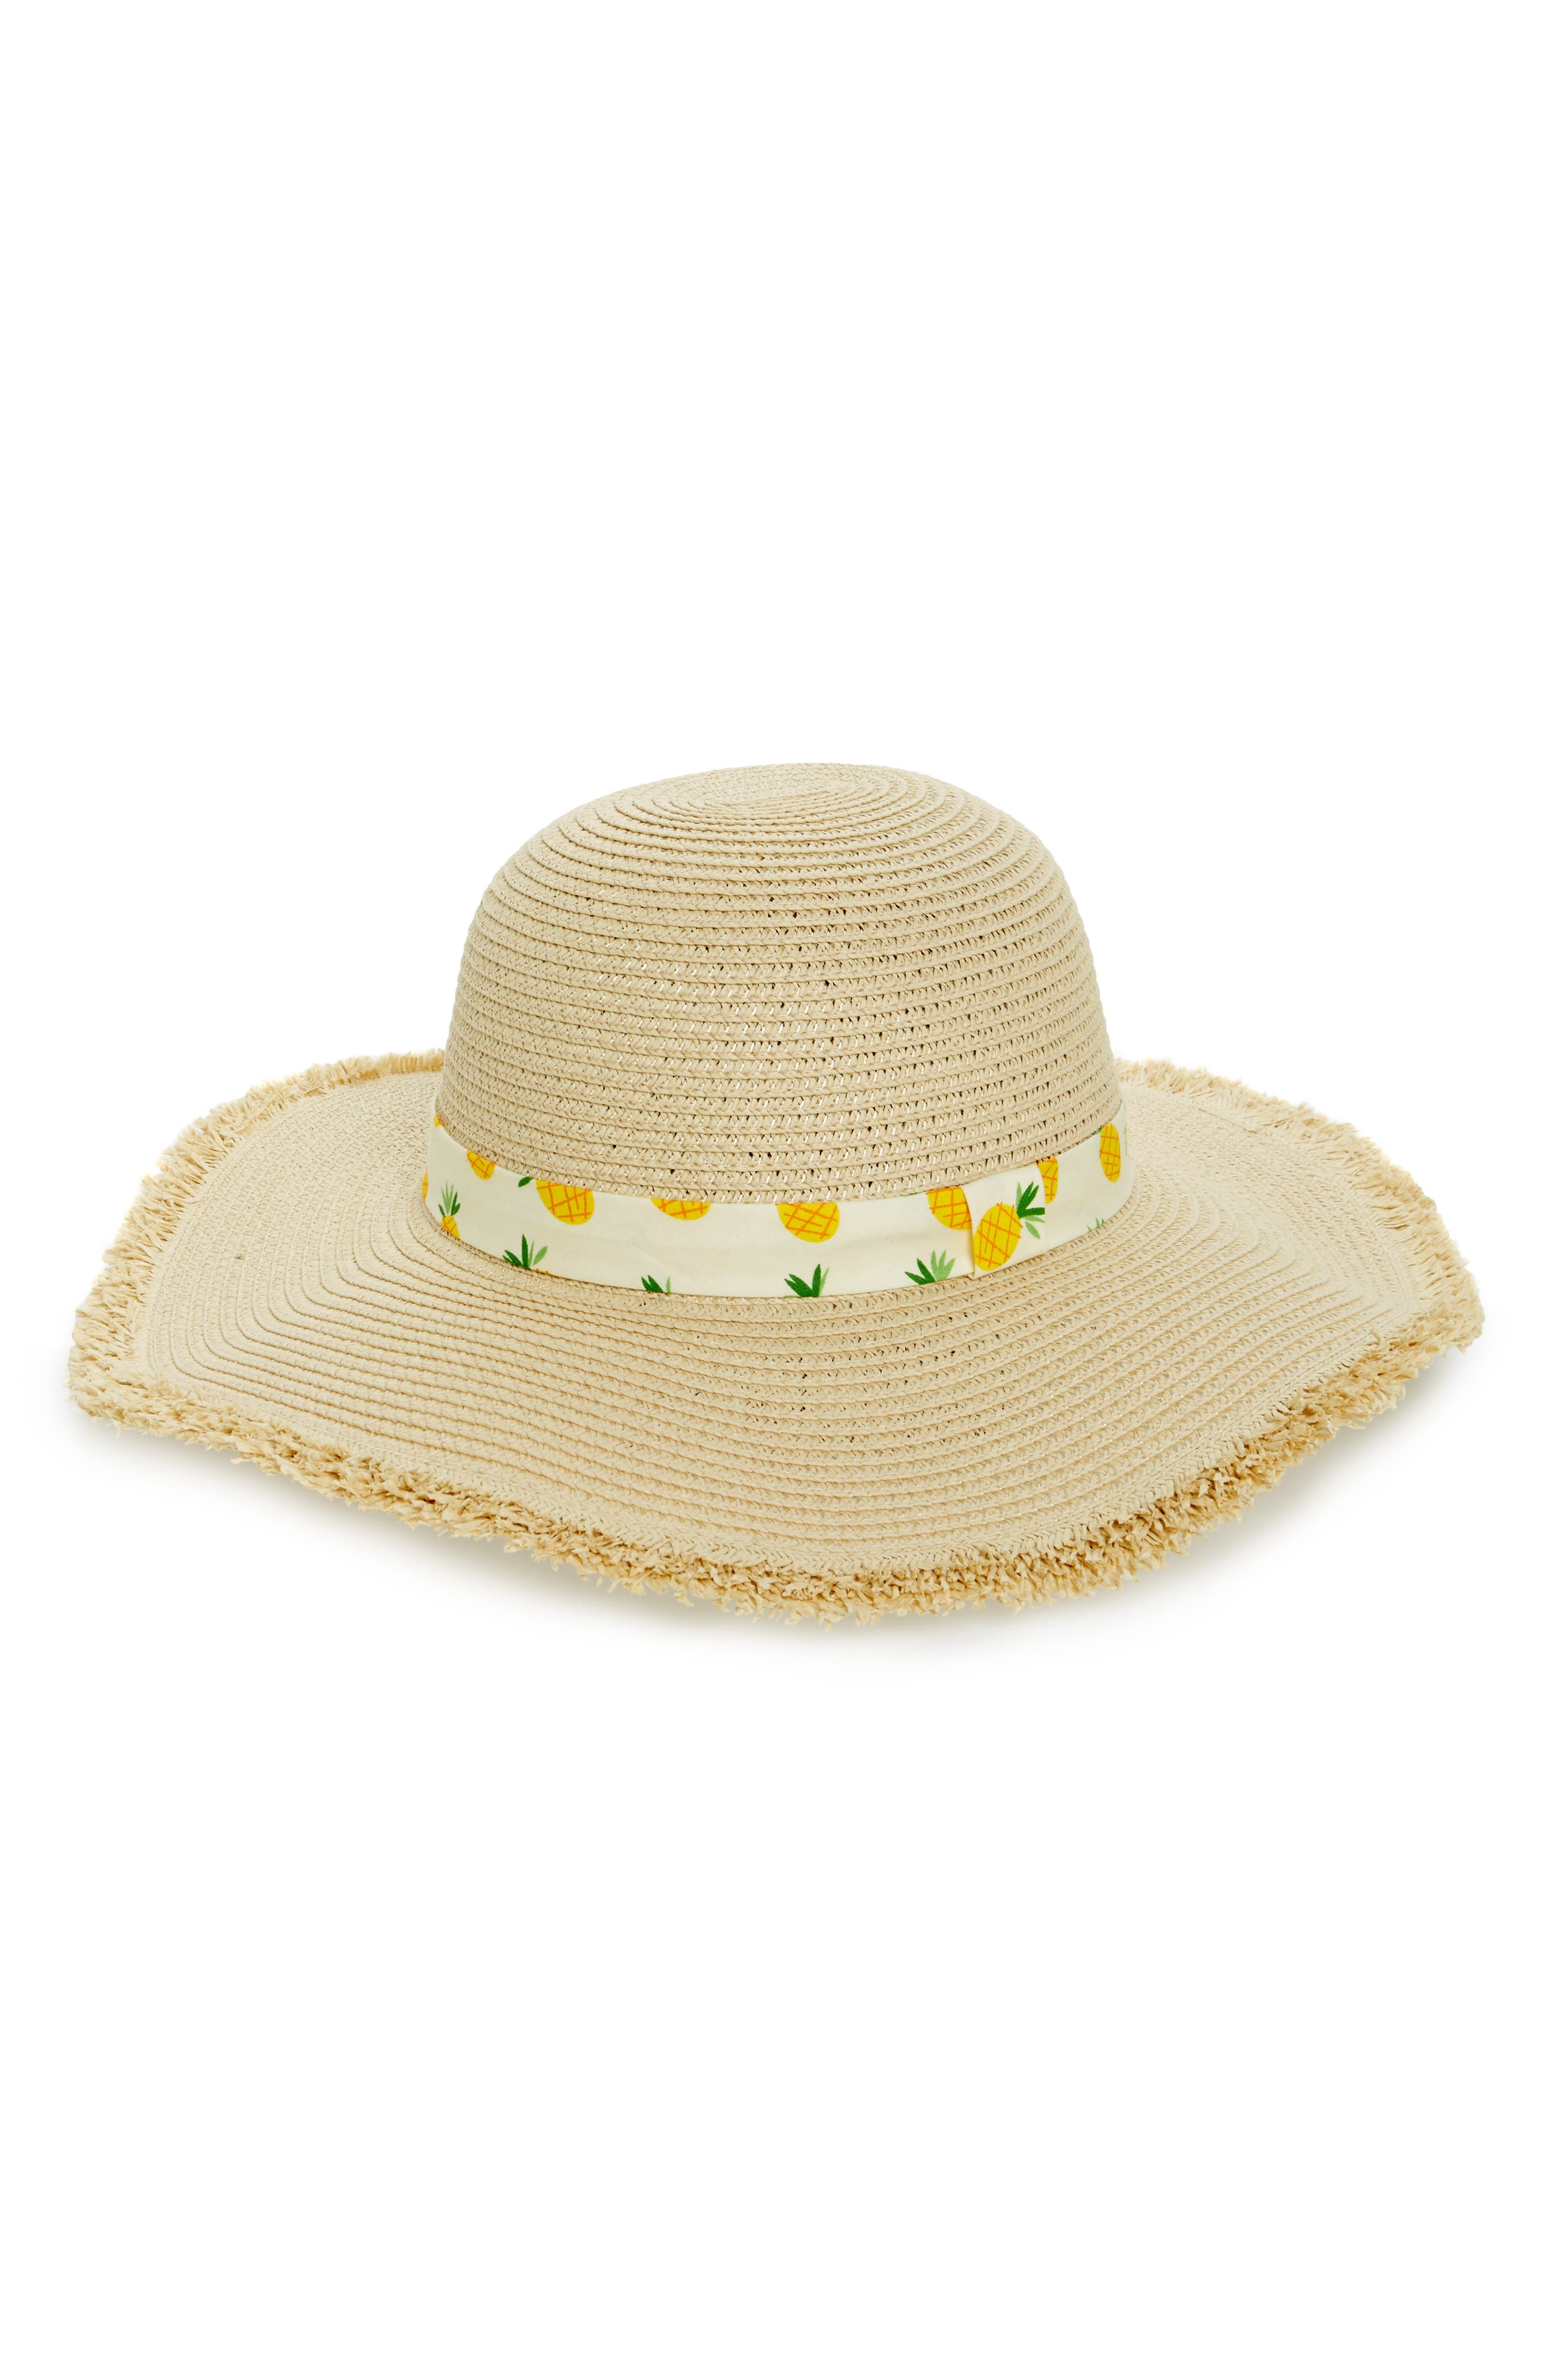 Novelty Band Floppy Straw Hat,                         Main,                         color, Natural/ Multi